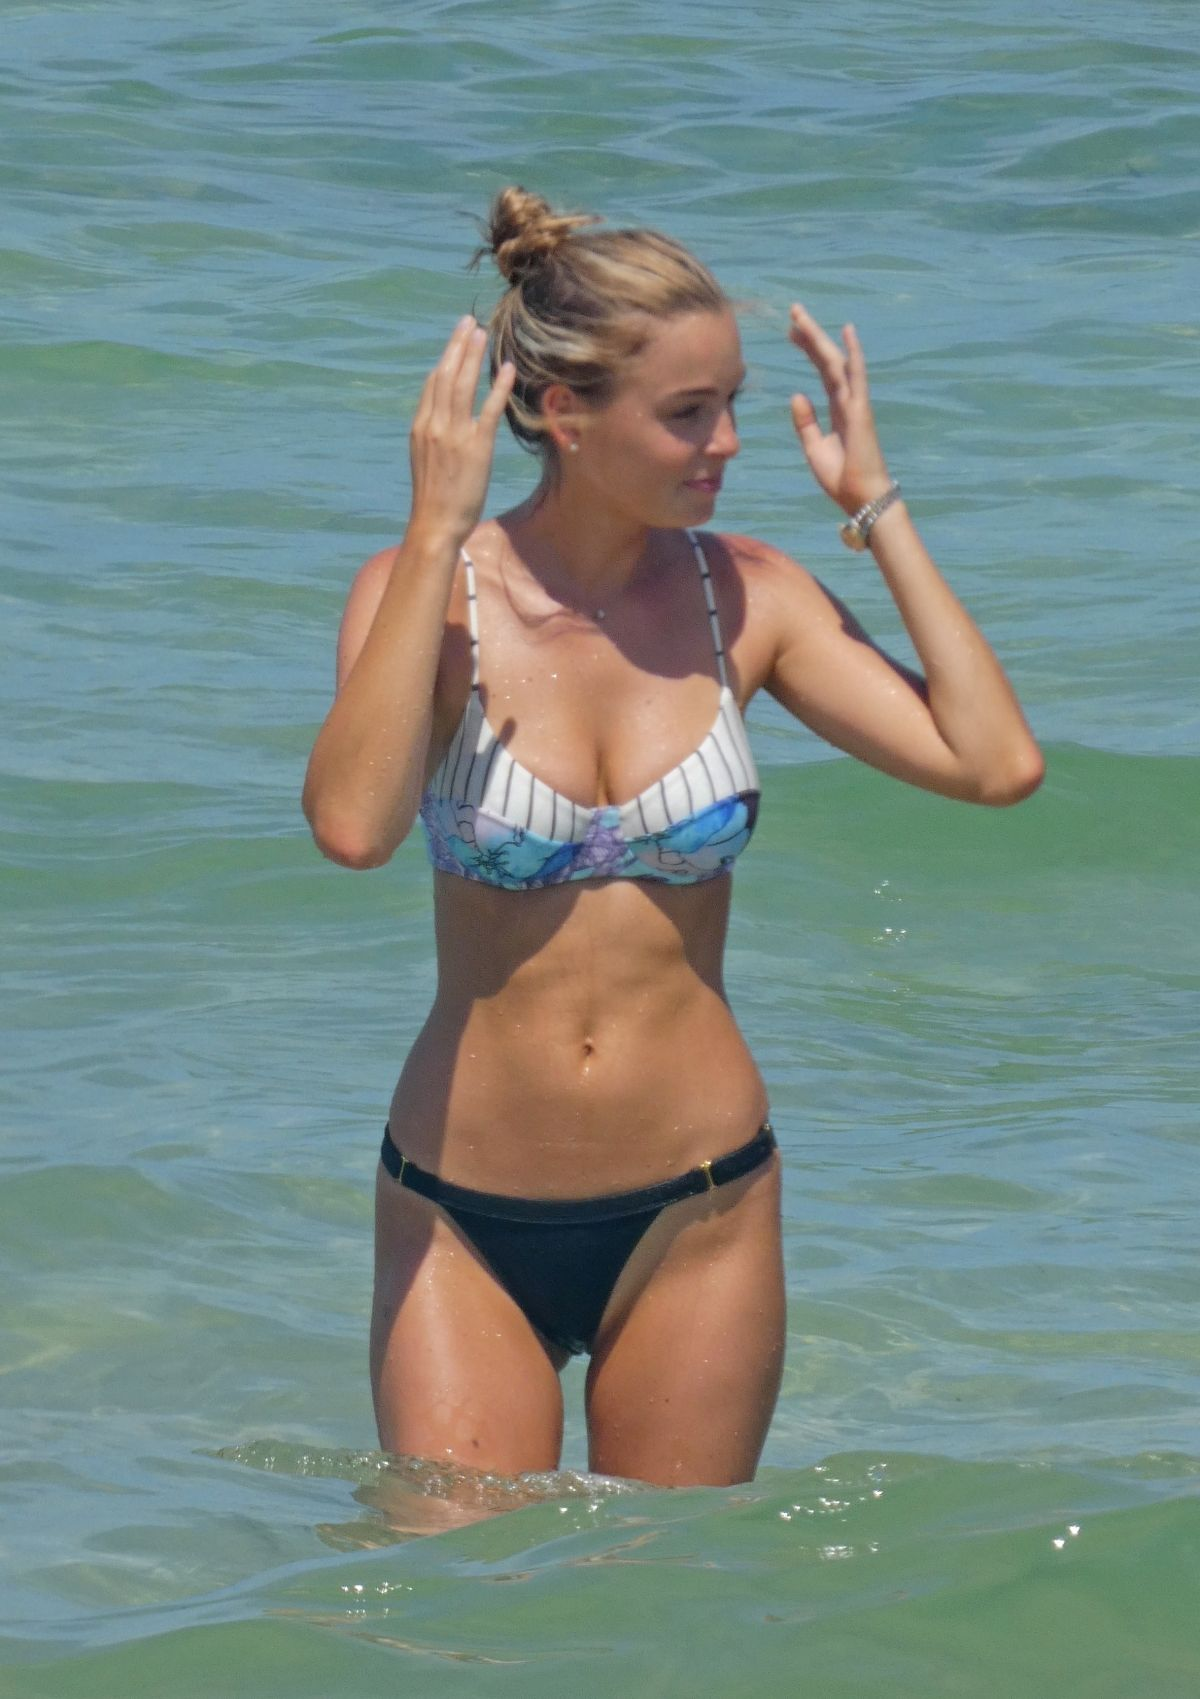 Bikini Elizabeth Turner naked (41 photo), Sexy, Sideboobs, Instagram, braless 2006